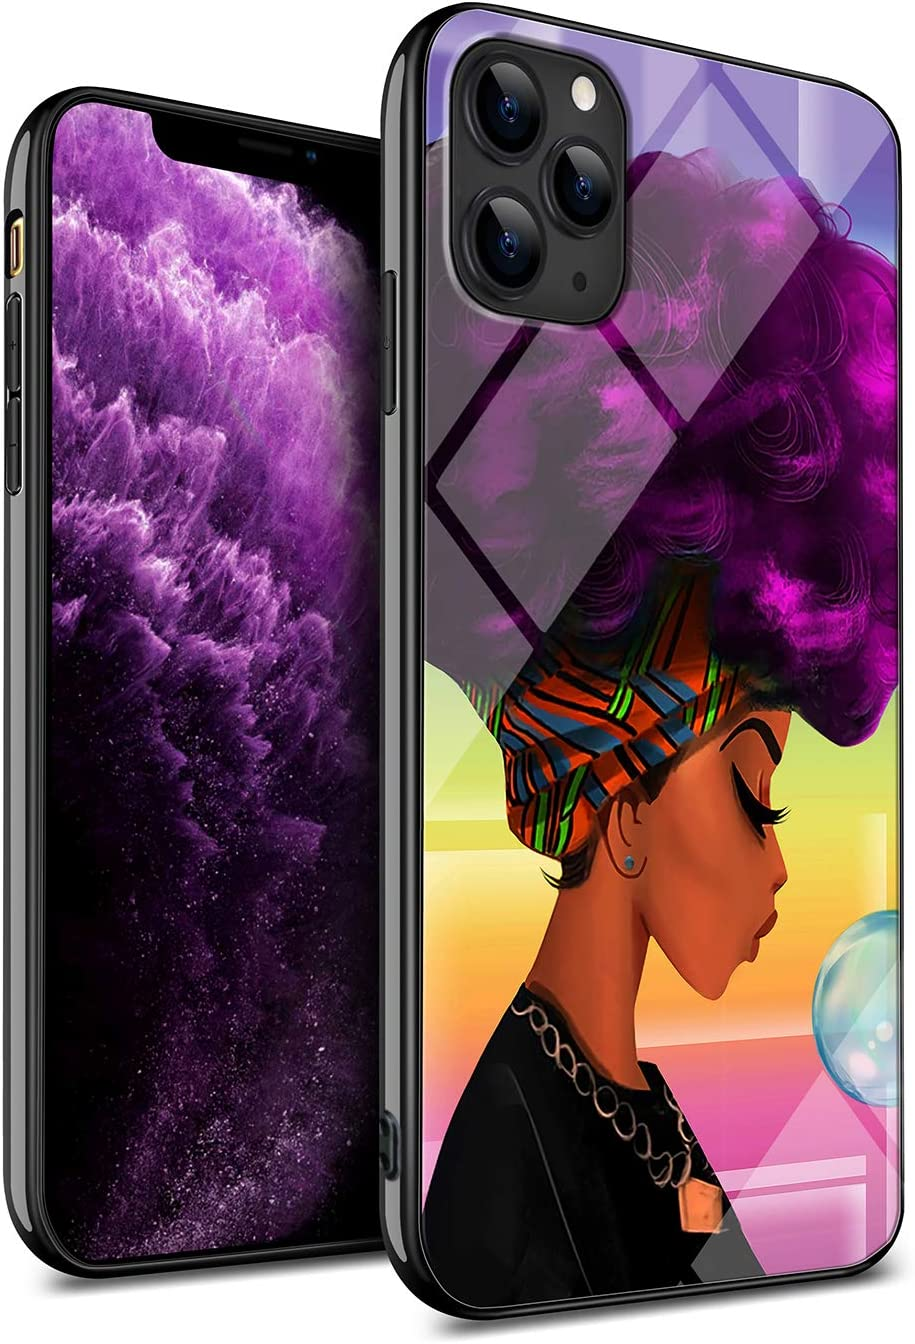 KITATA iPhone 11 Pro Max Case African American Black Women Afro Girls Africa Melanin Purple Hair Art Girly Cute Art Design, Slim Fit Thin Grip Soft TPU and Hard Plastic Phone Case Protective Cover